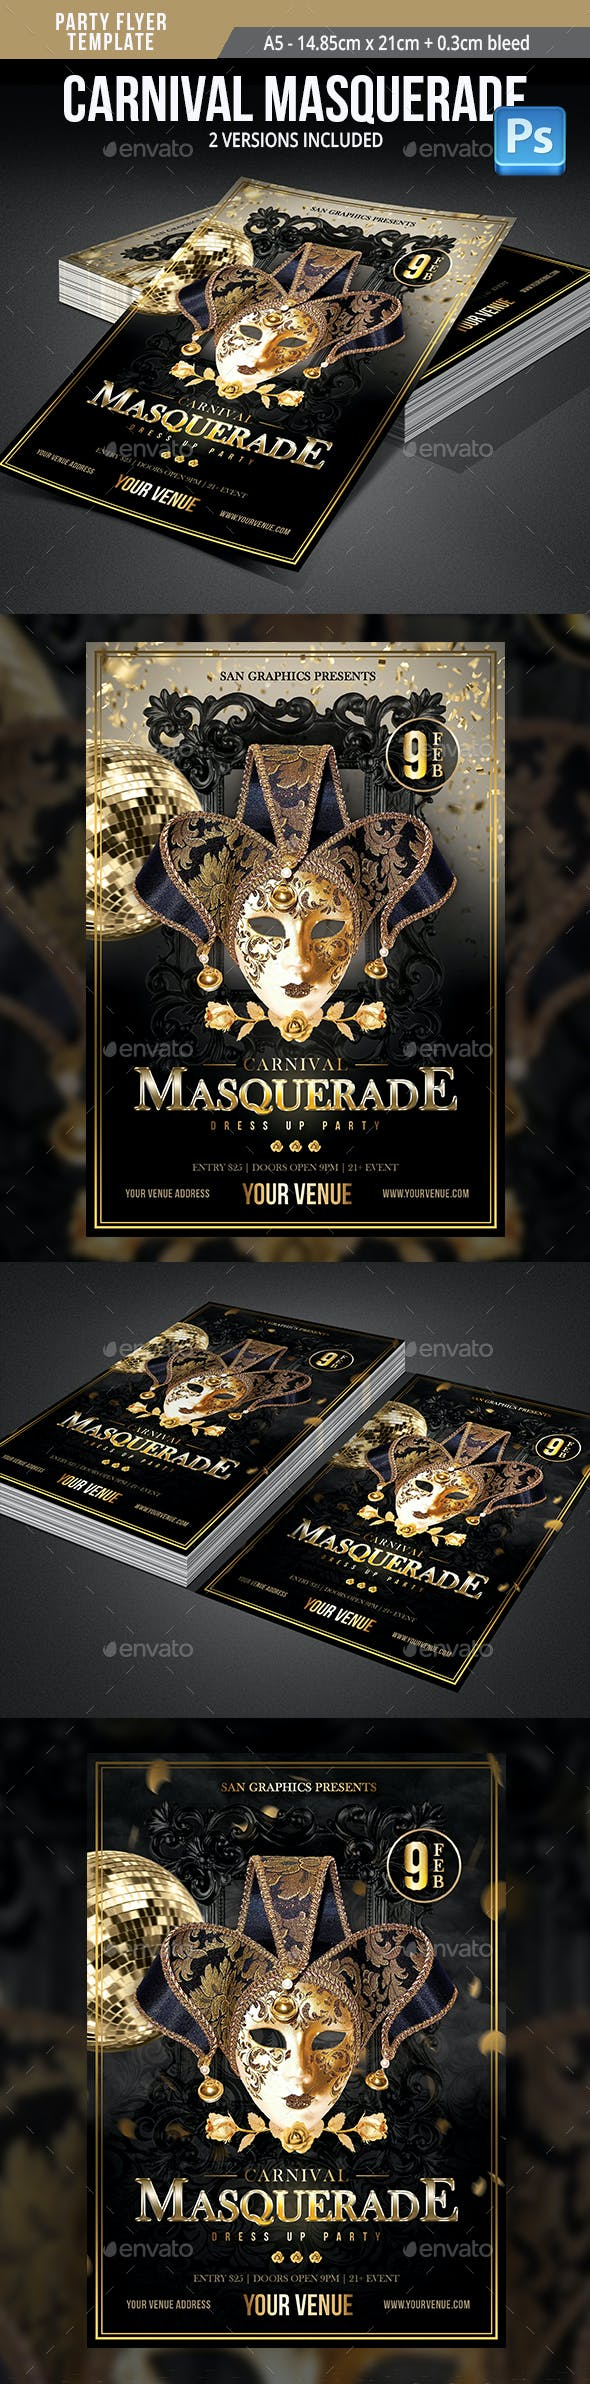 carnival masquerade dress up party flyer template by sangraphics